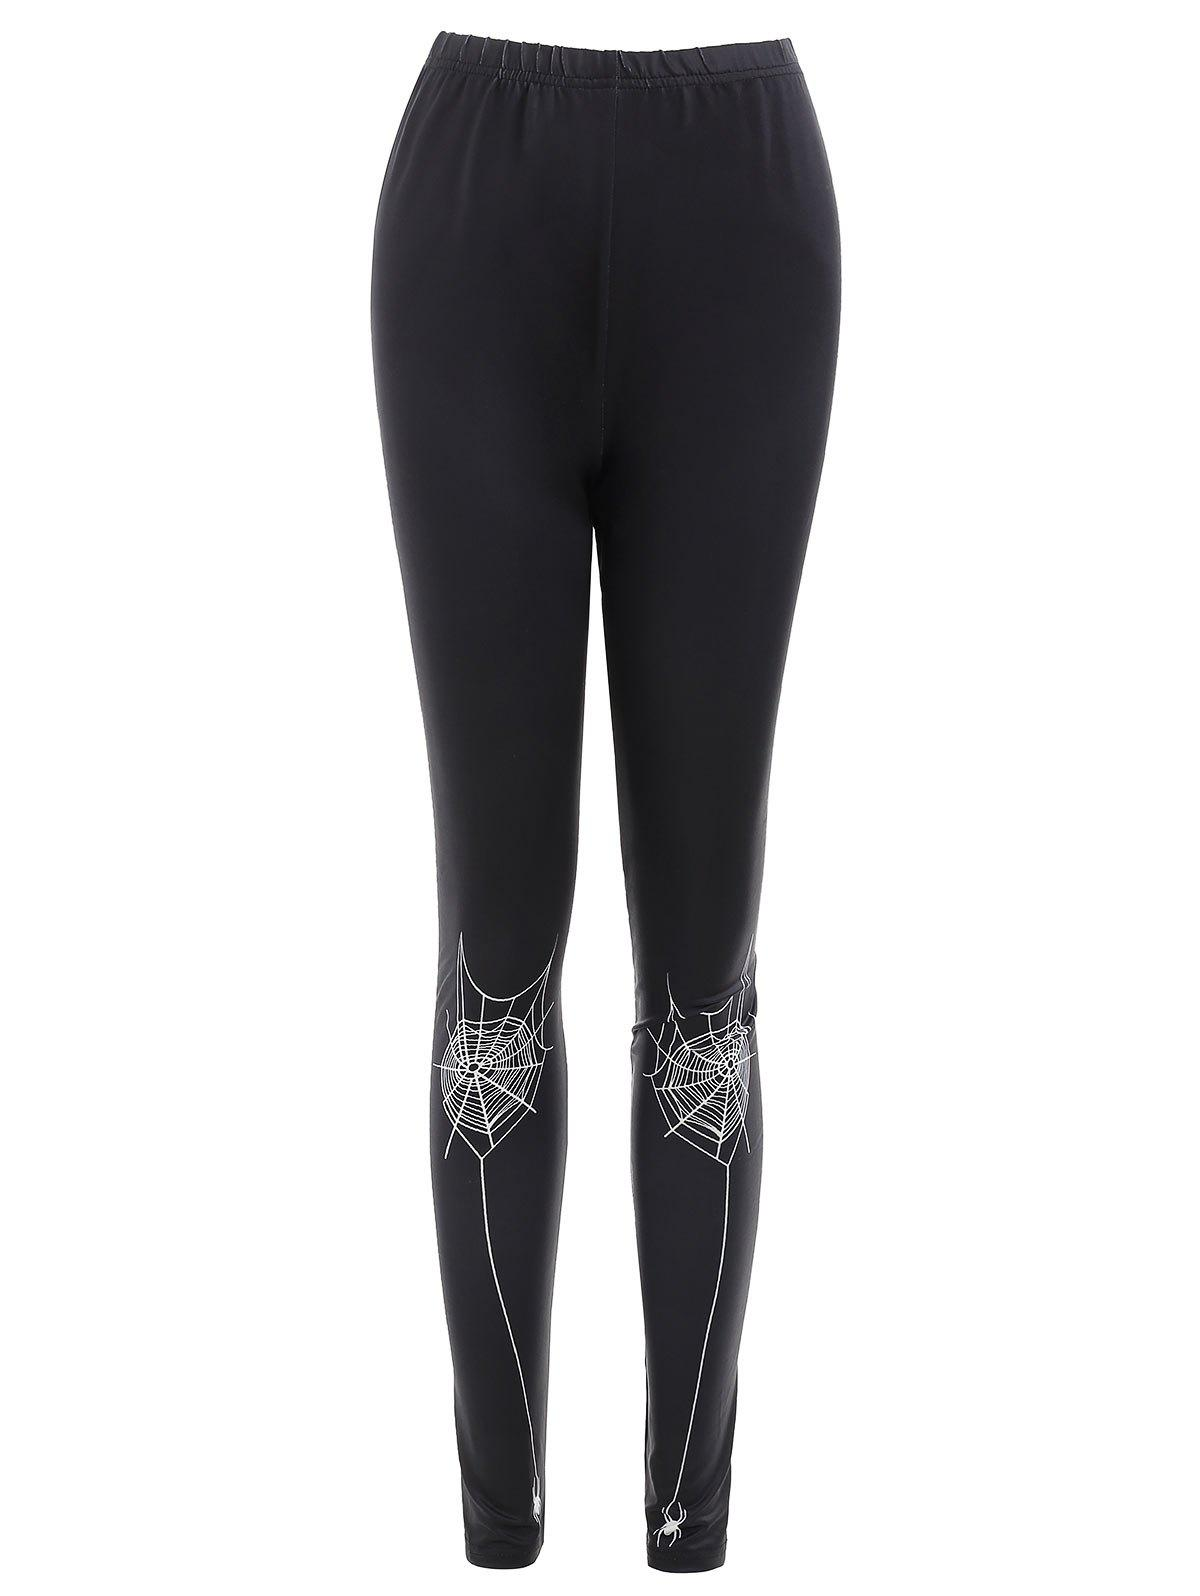 Discount Spider Web Print Slim Fit Leggings